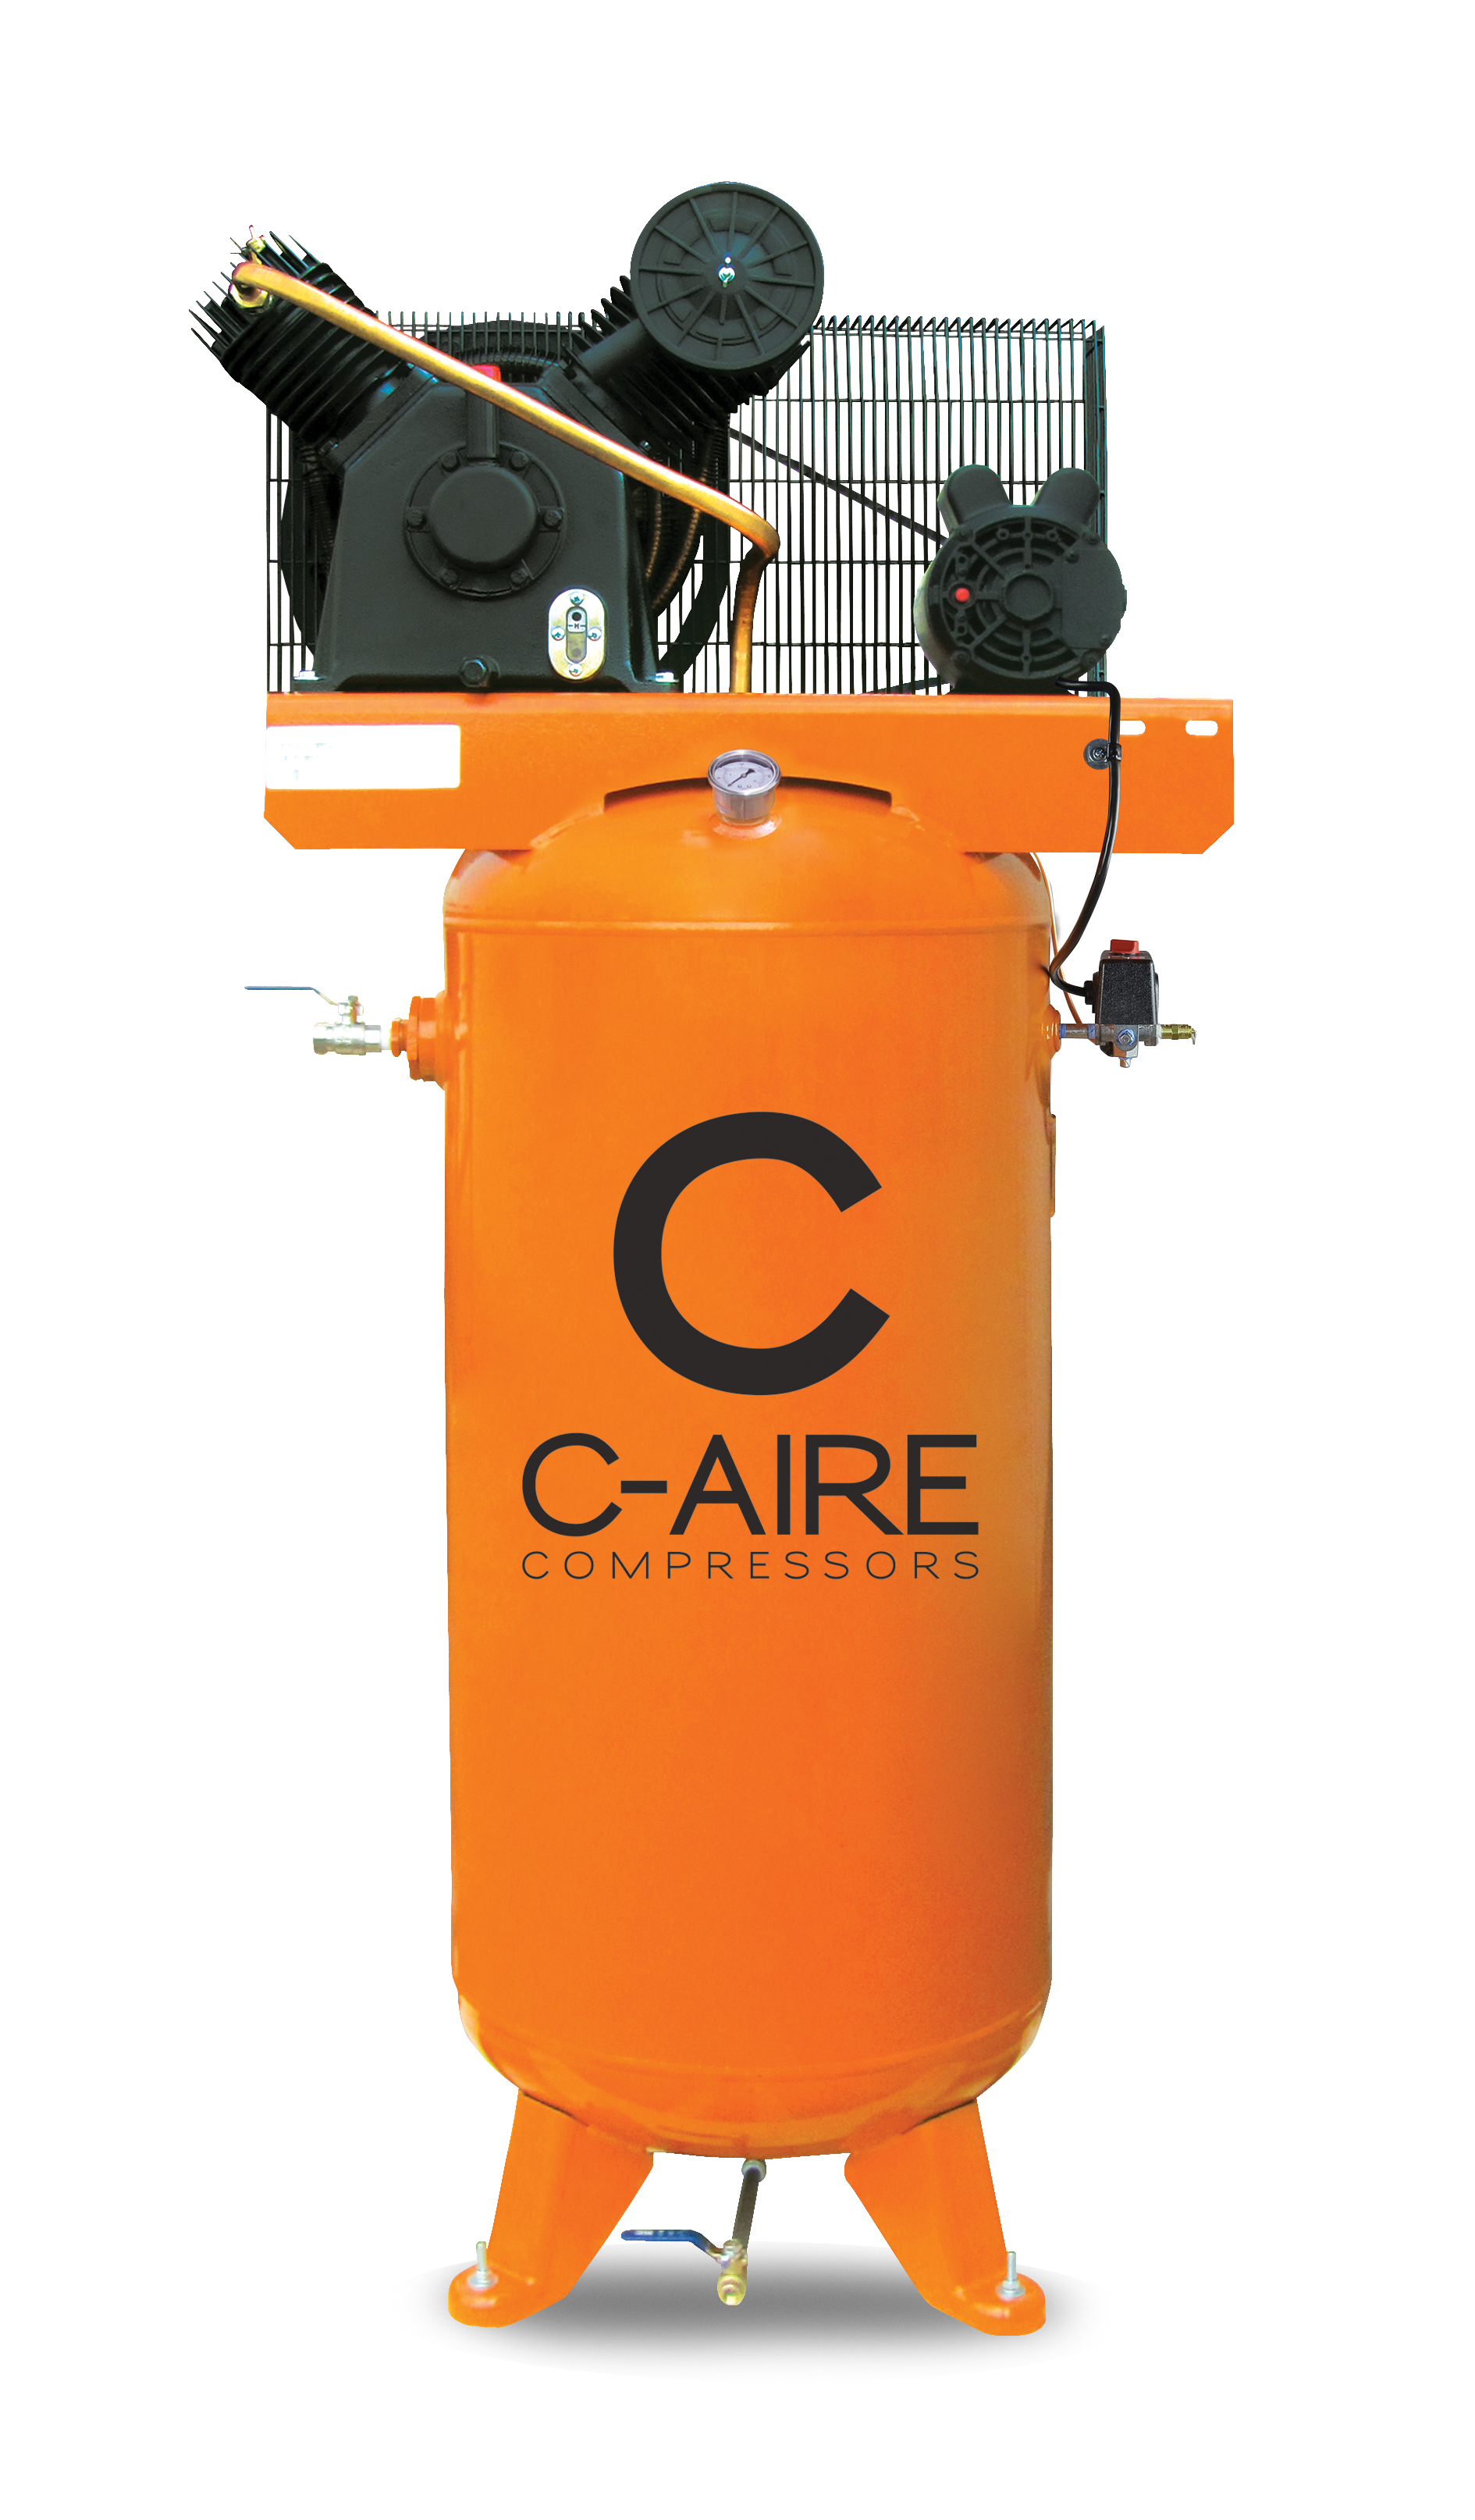 C-Aire 5 Hp. Performance Package Air Compressor